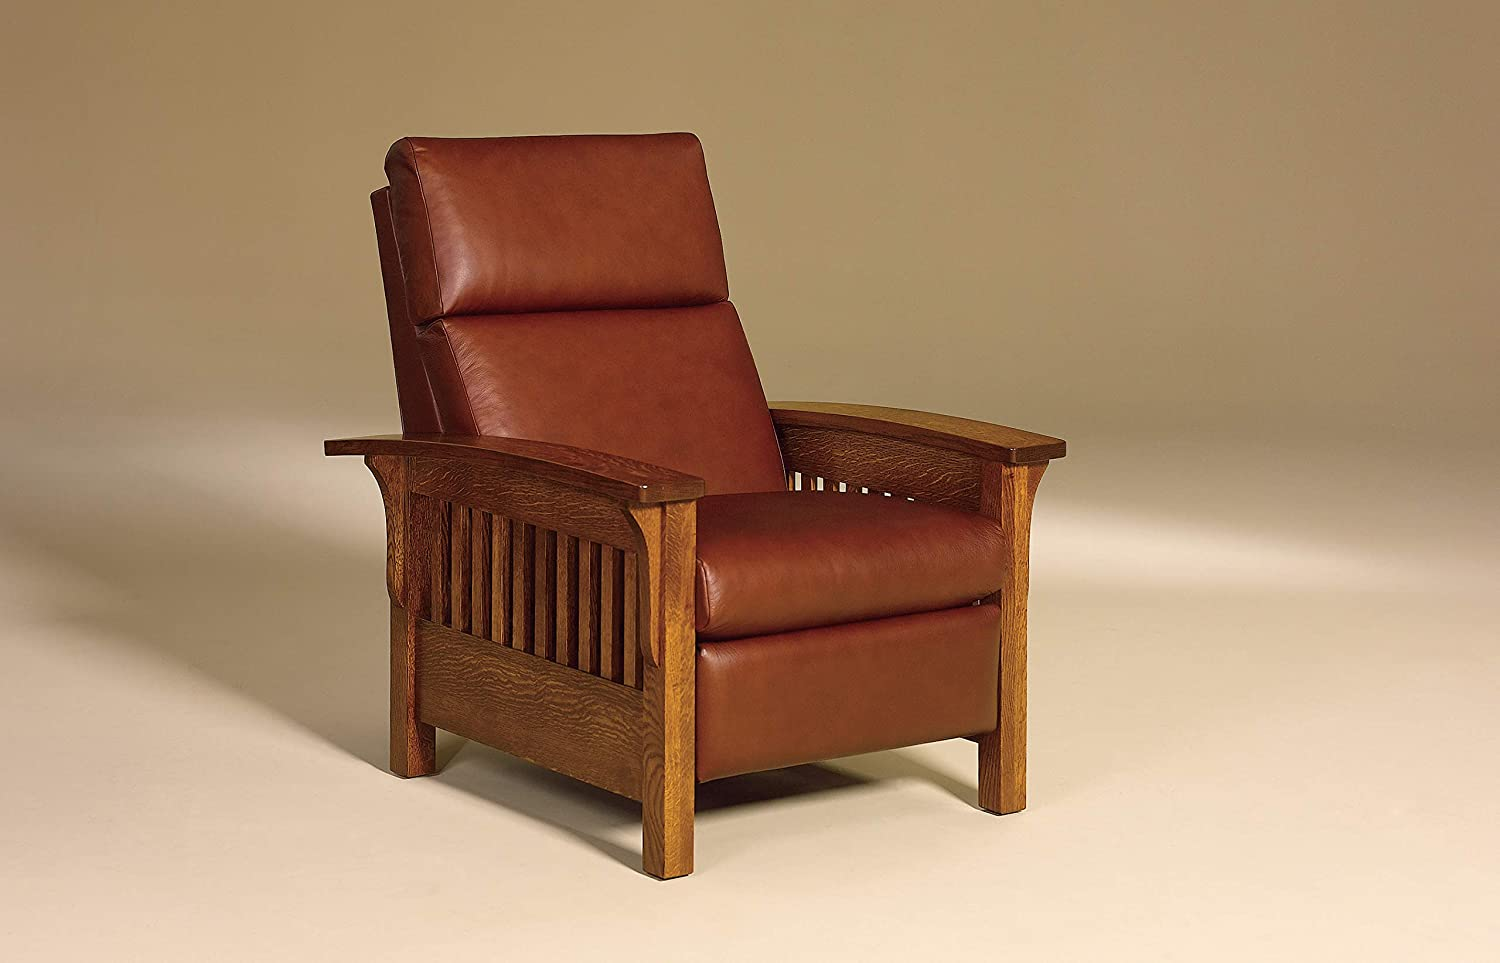 Amish Solid Wood Recliner Chair Heartland Mission Arts & Crafts